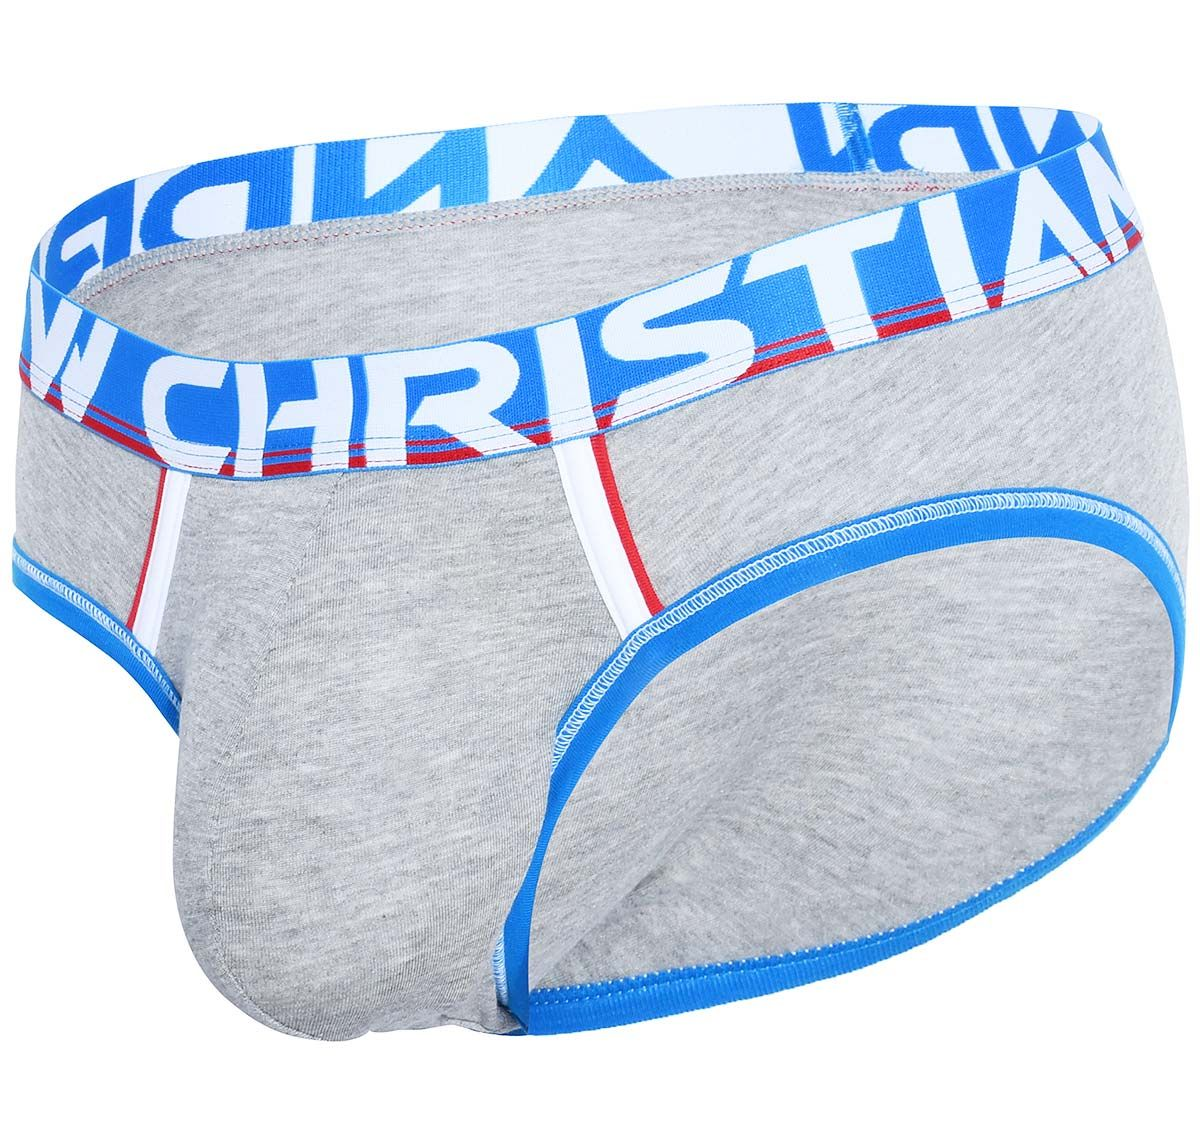 Andrew Christian Slip COOLFLEX MODAL ACTIVE BRIEF W/ SHOW-IT 91499, gris